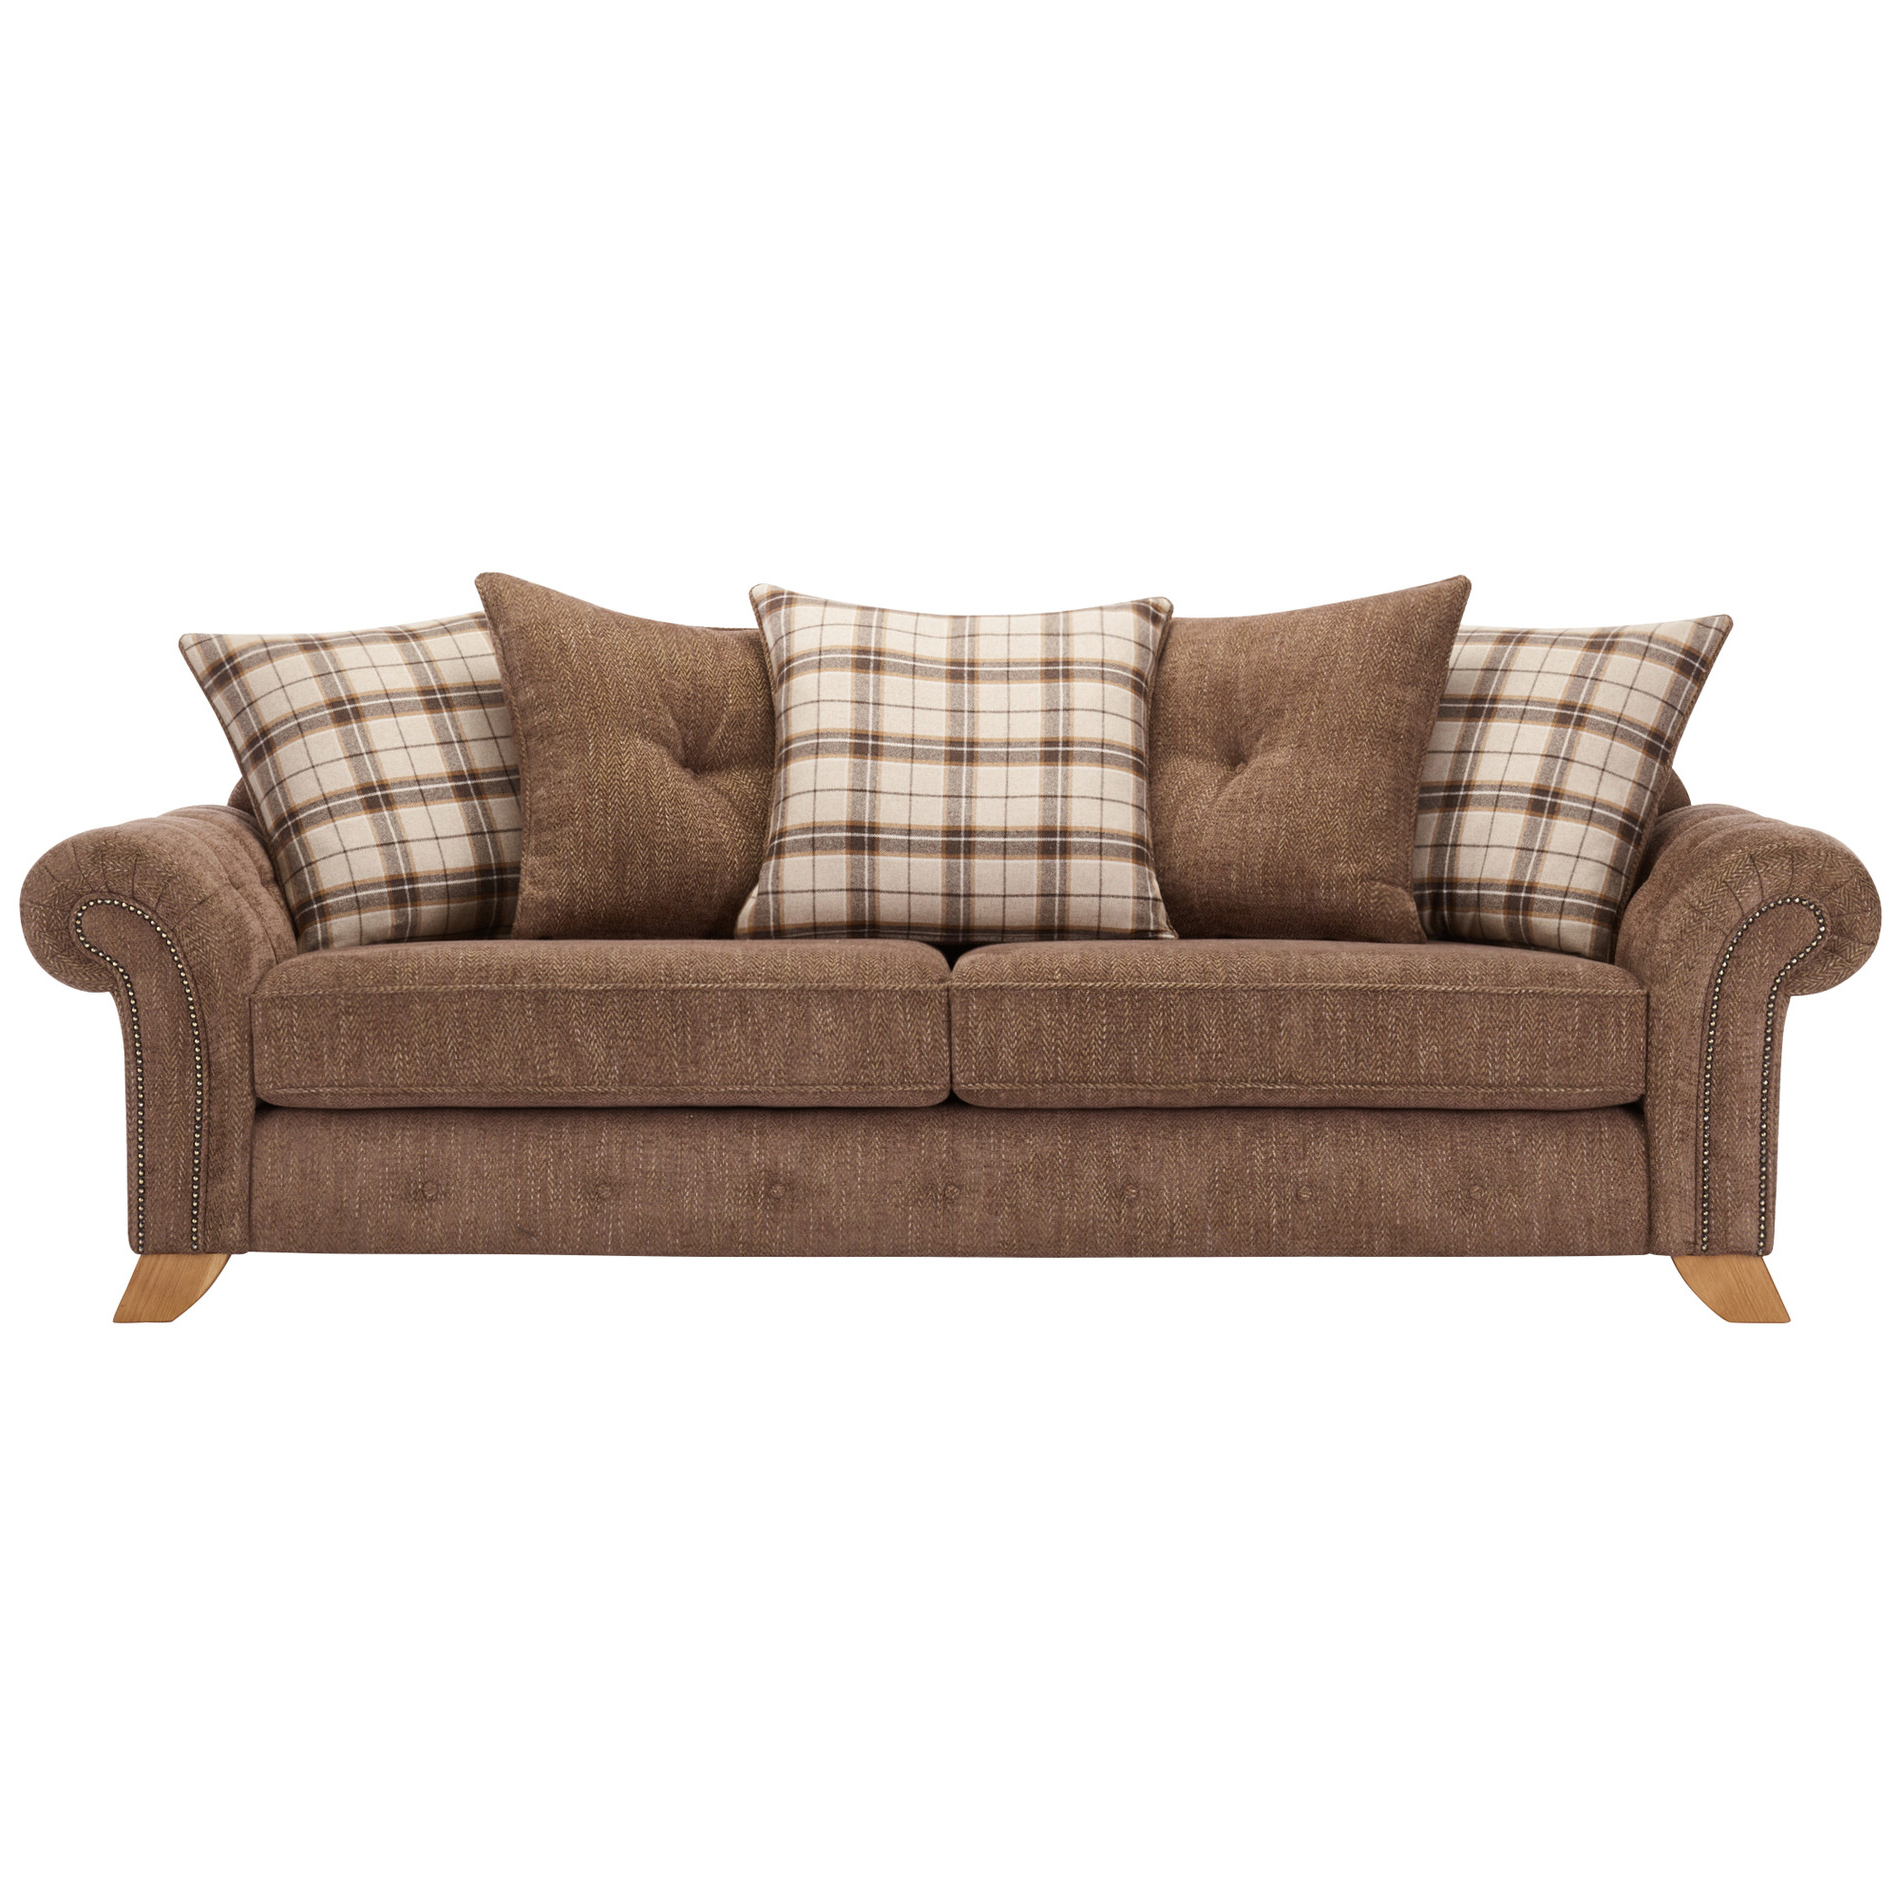 2018 Lyvia Pillowback Sofa Sectional Sofas Inside Montana 4 Seater Sofa With Pillow Back In Brown Fabric (View 13 of 20)